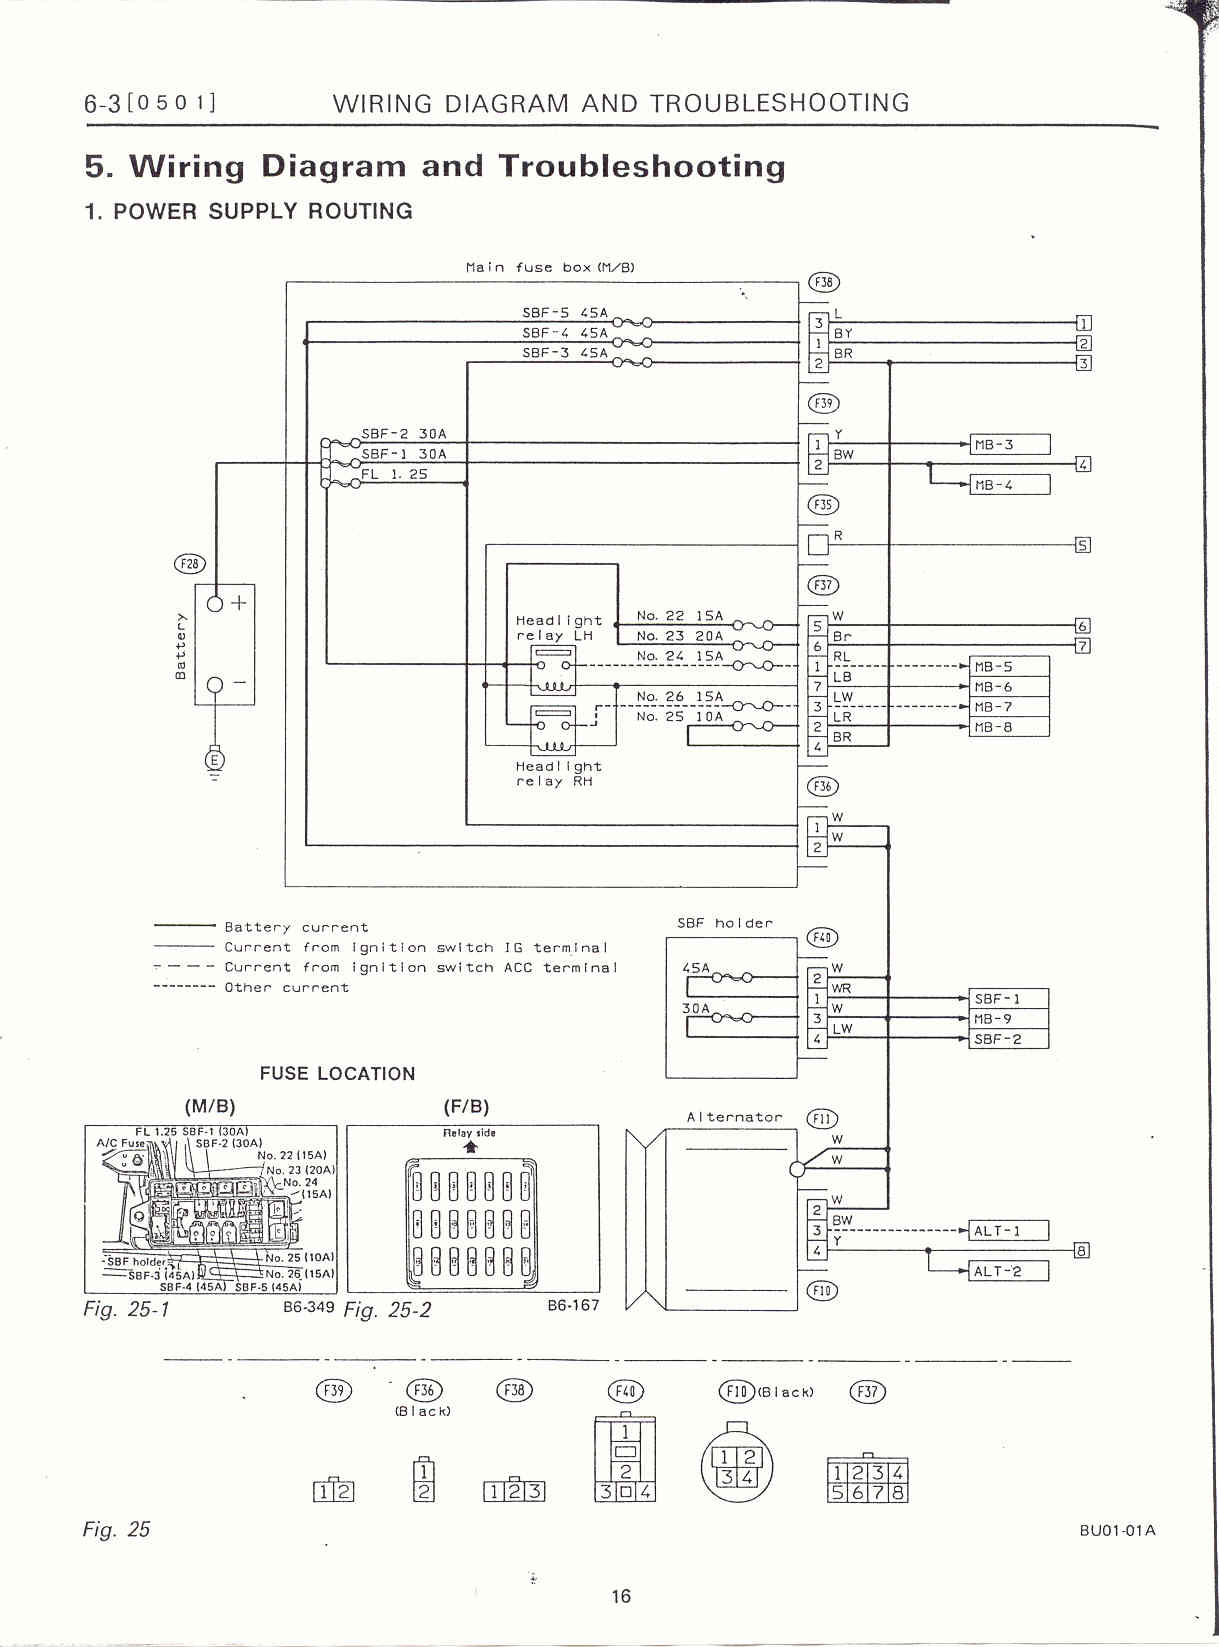 6 3_power_supply_routing1 1997 subaru legacy wiring diagram 2007 subaru legacy wiring toyota tundra radio wiring diagram at webbmarketing.co